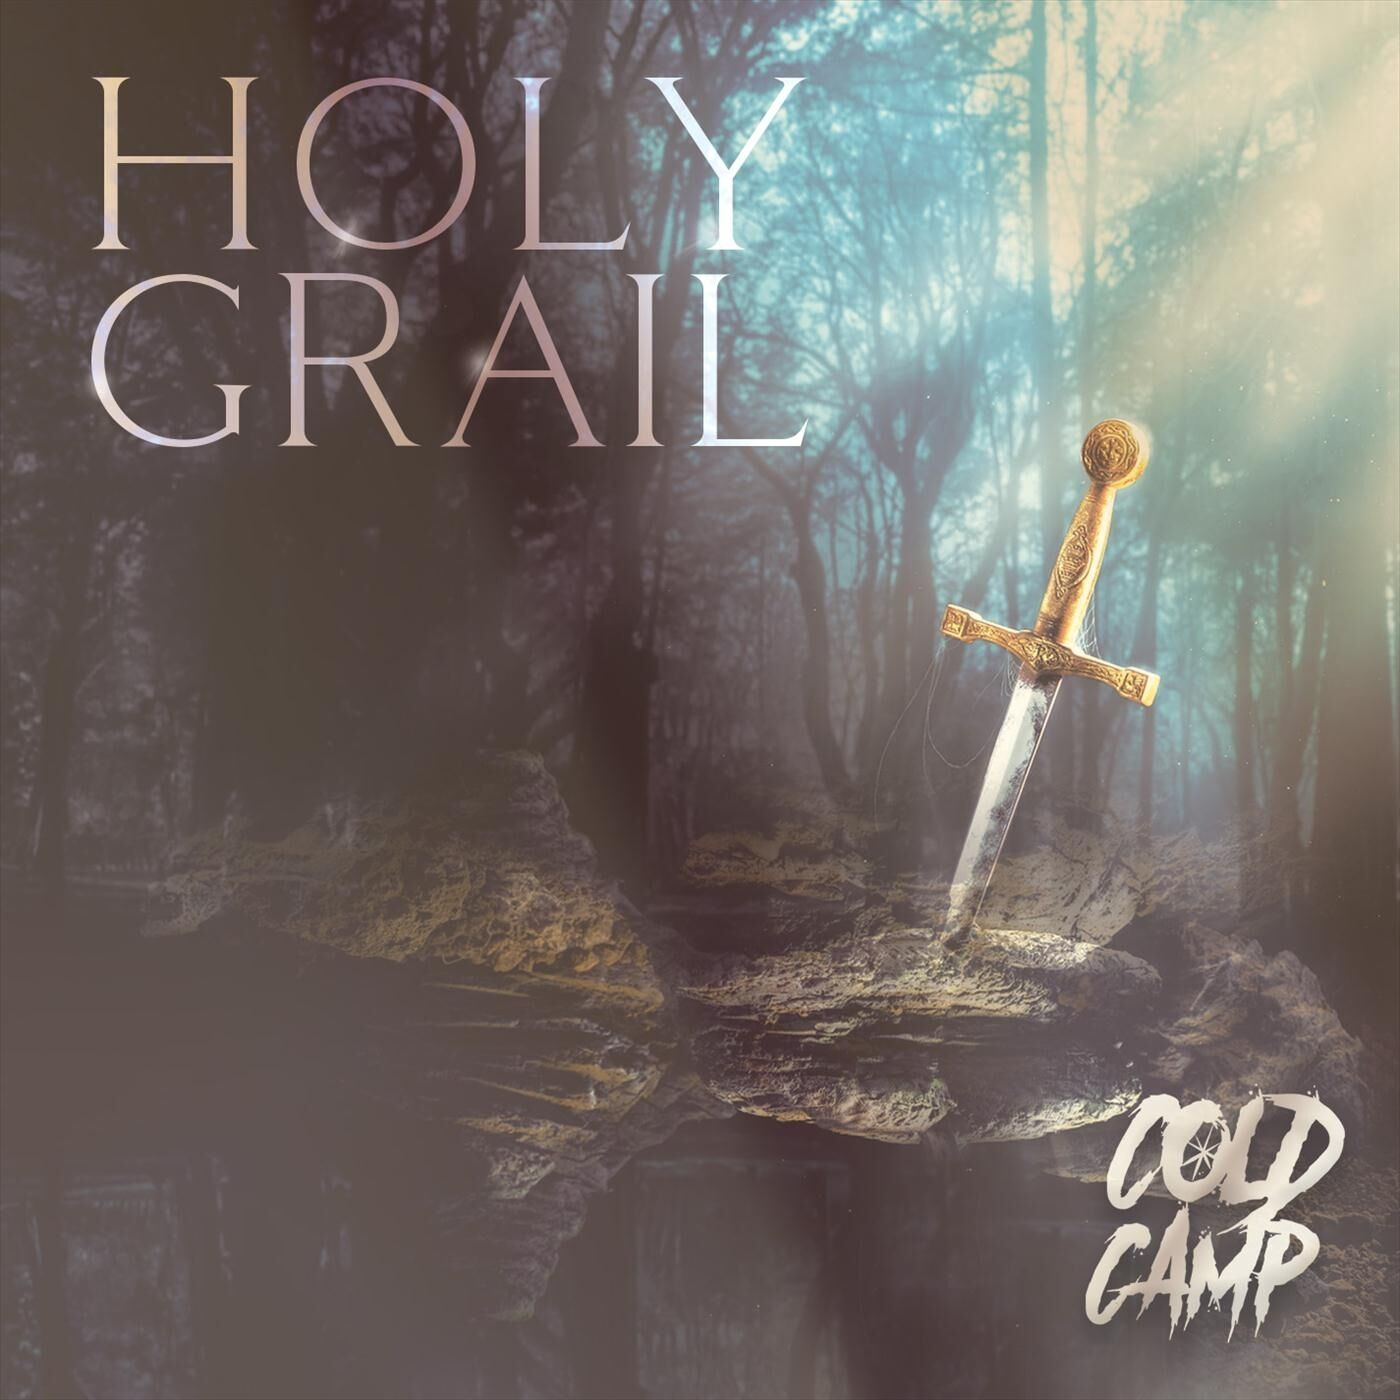 Cold Camp - Holy Grail [EP] (2019)